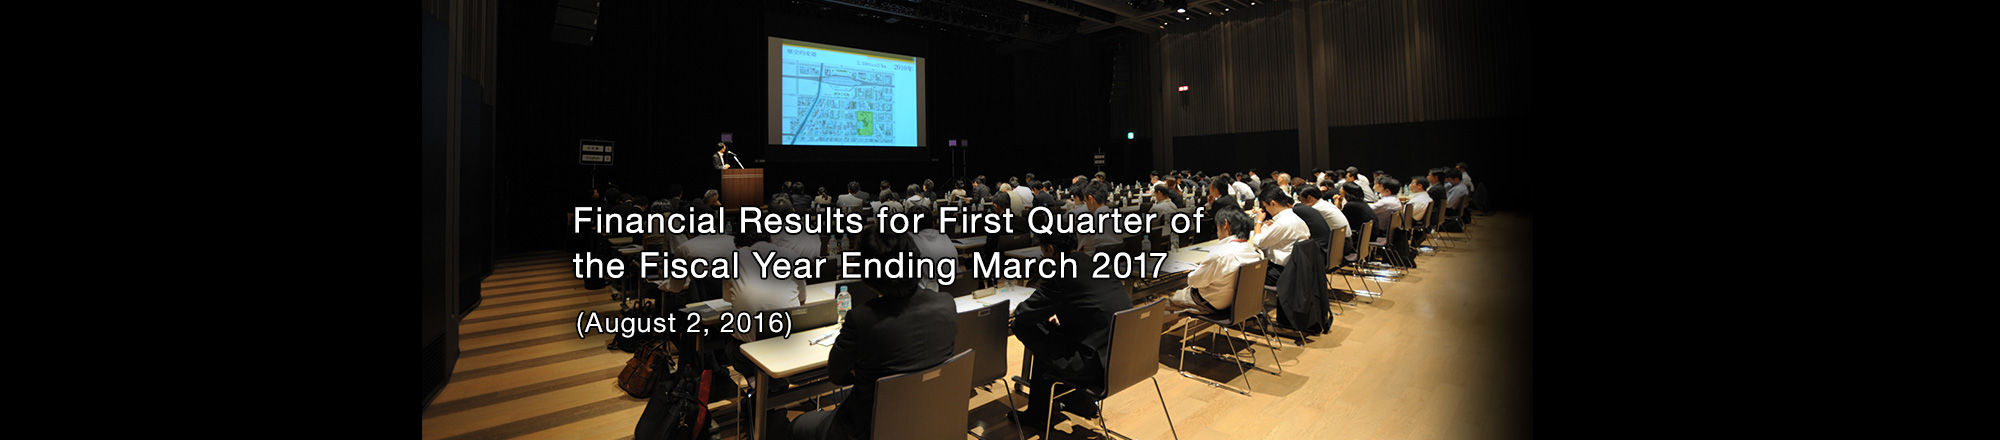 Financial Results for First Quarter of the Fiscal Year Ending March 2017 (August 2, 2016)